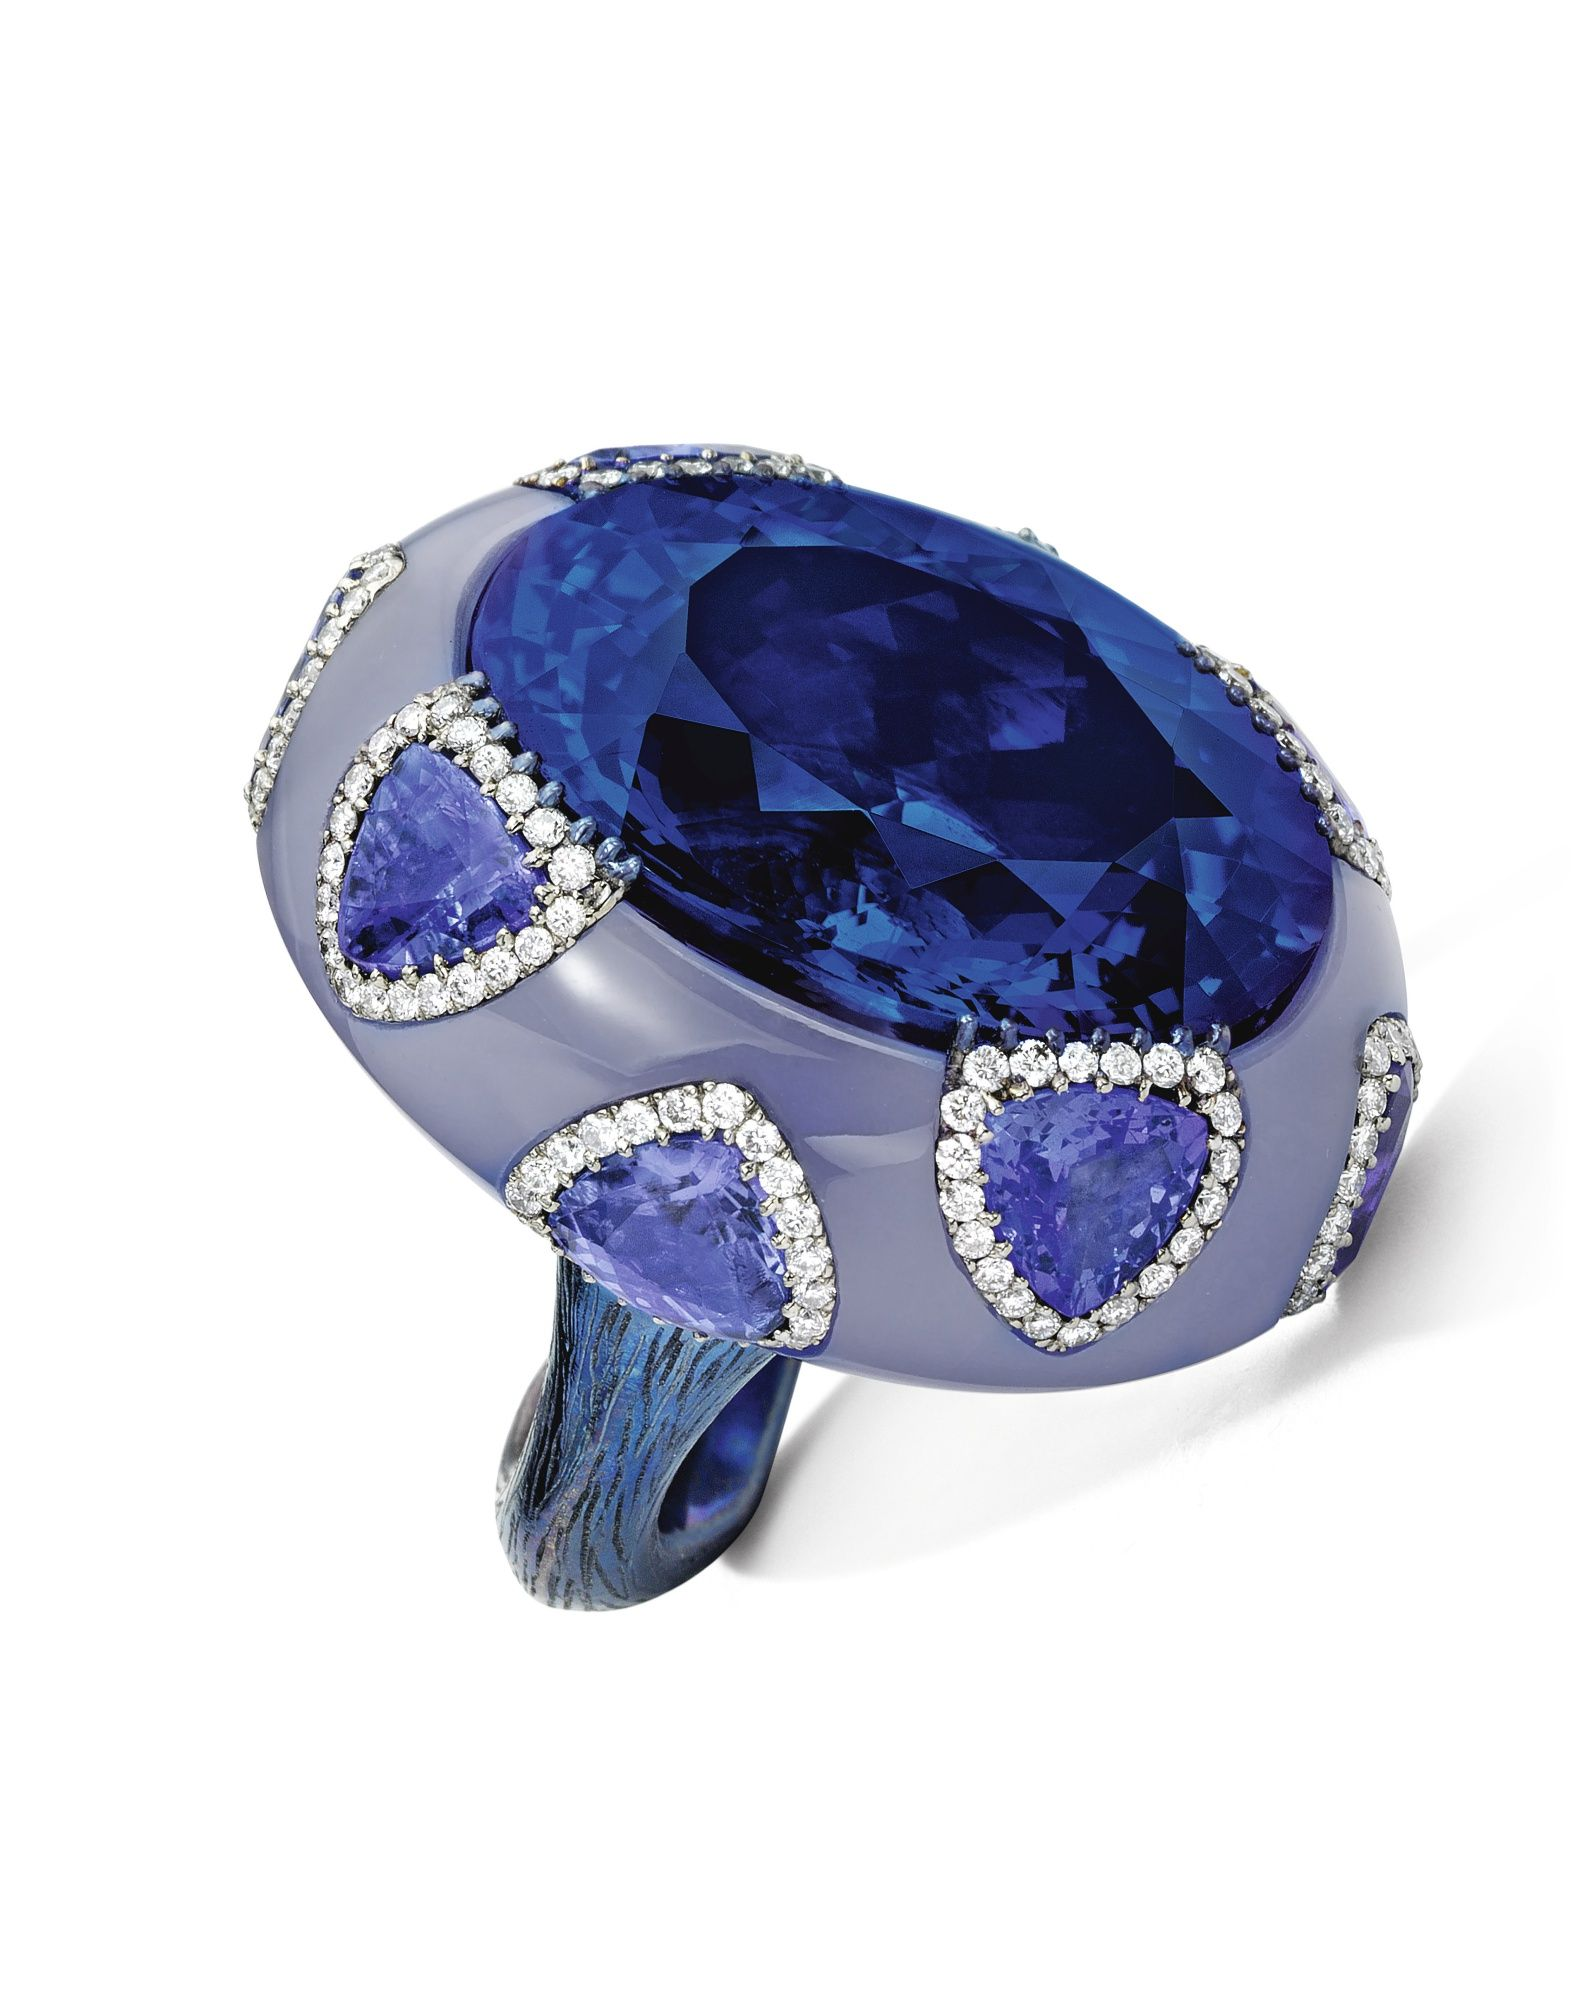 Tanzanite Chalcedony And Diamond Ring Wallace Chan Set With An Oval Tanzanite Weighing Approximately 35 42 Ca Beautiful Jewelry Wallace Chan Artistic Jewelry